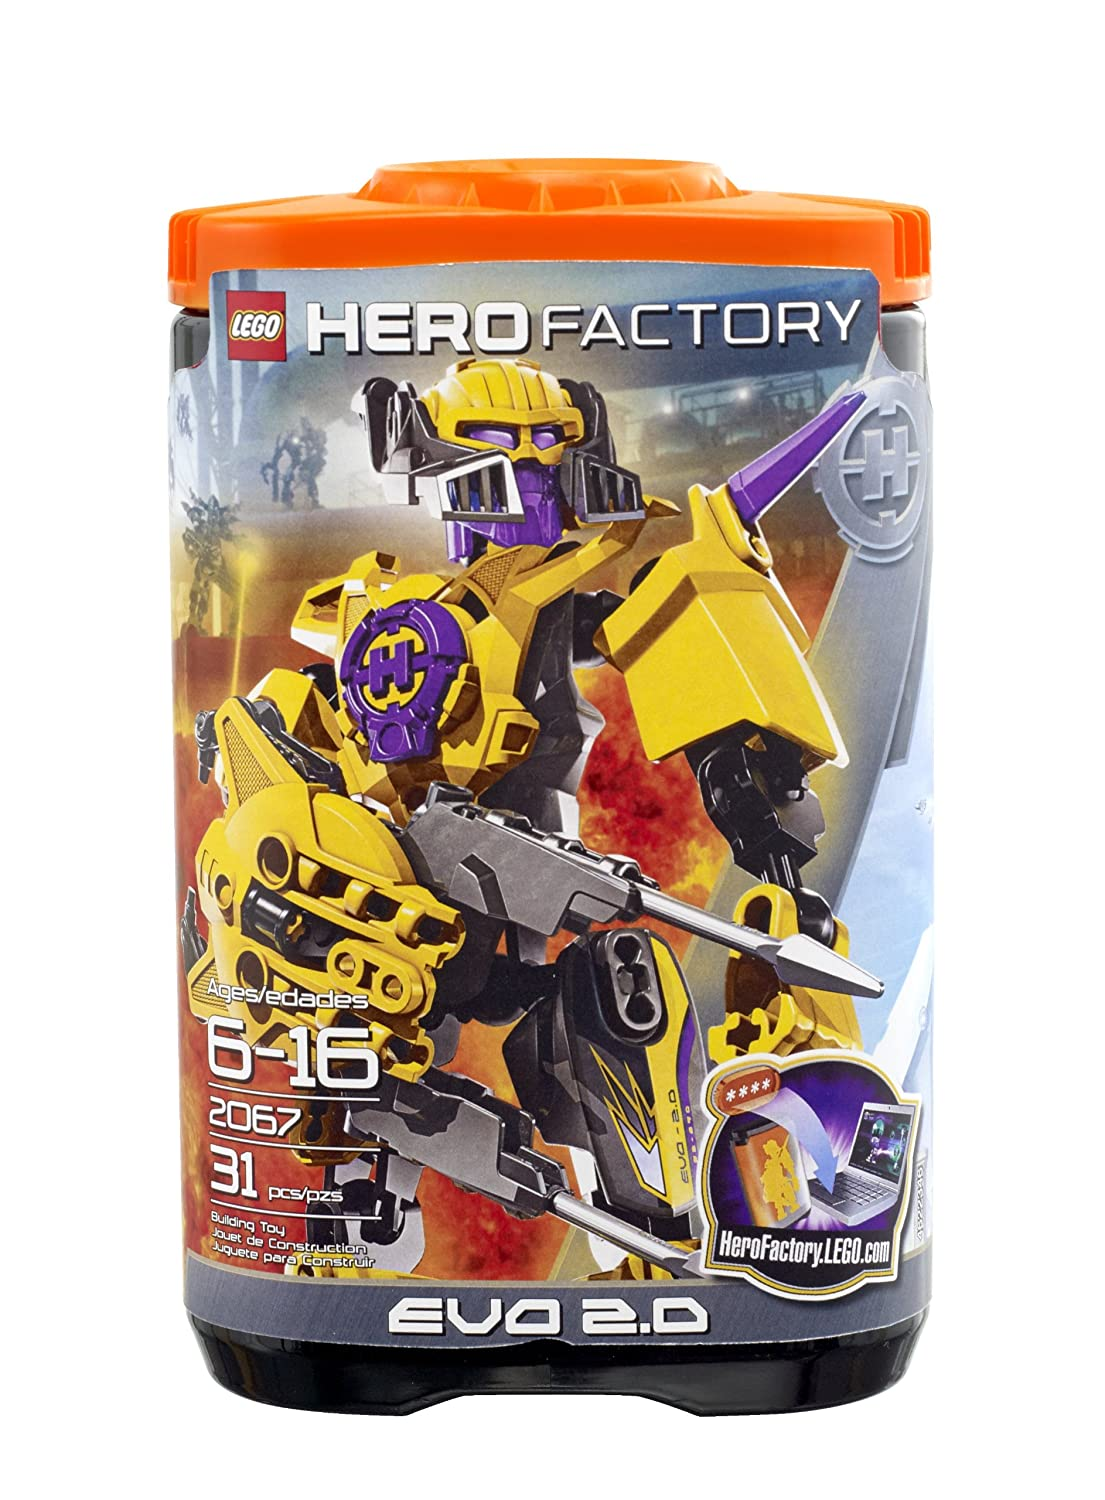 Buy Lego Hero Factory Evo 20 2067 Online At Low Prices In India